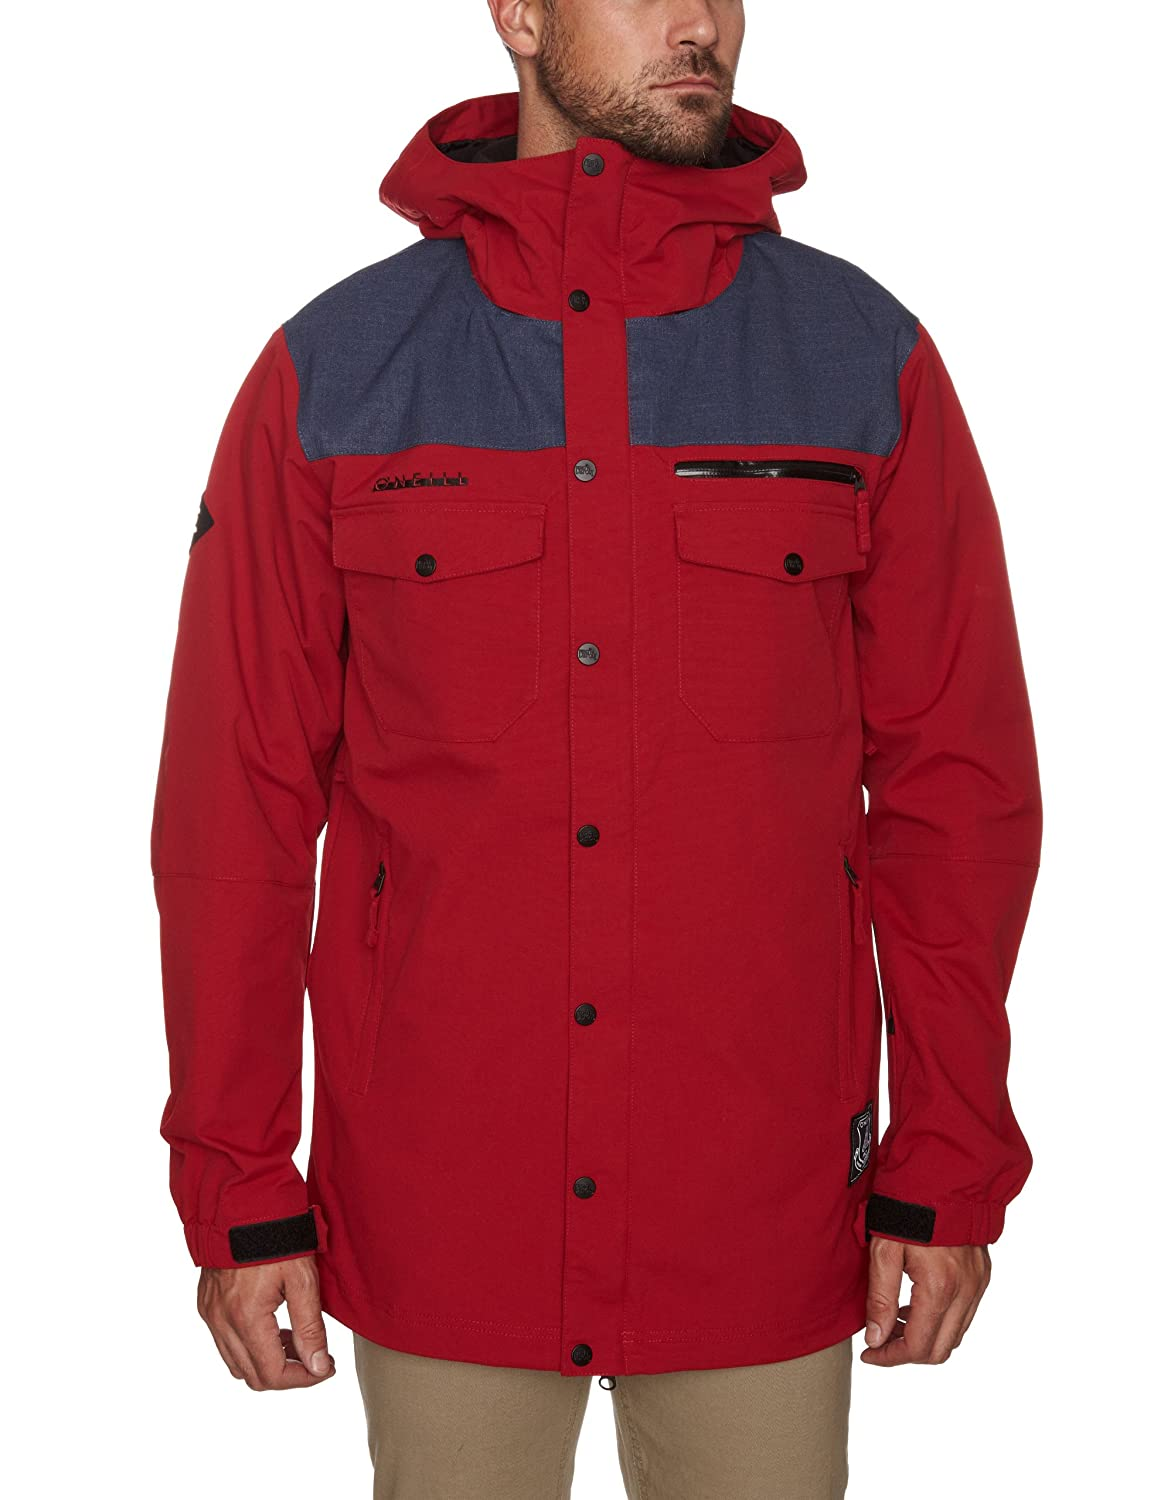 O'Neill Freedom Button Up Snowboard-Jacke – Rio Rot günstig